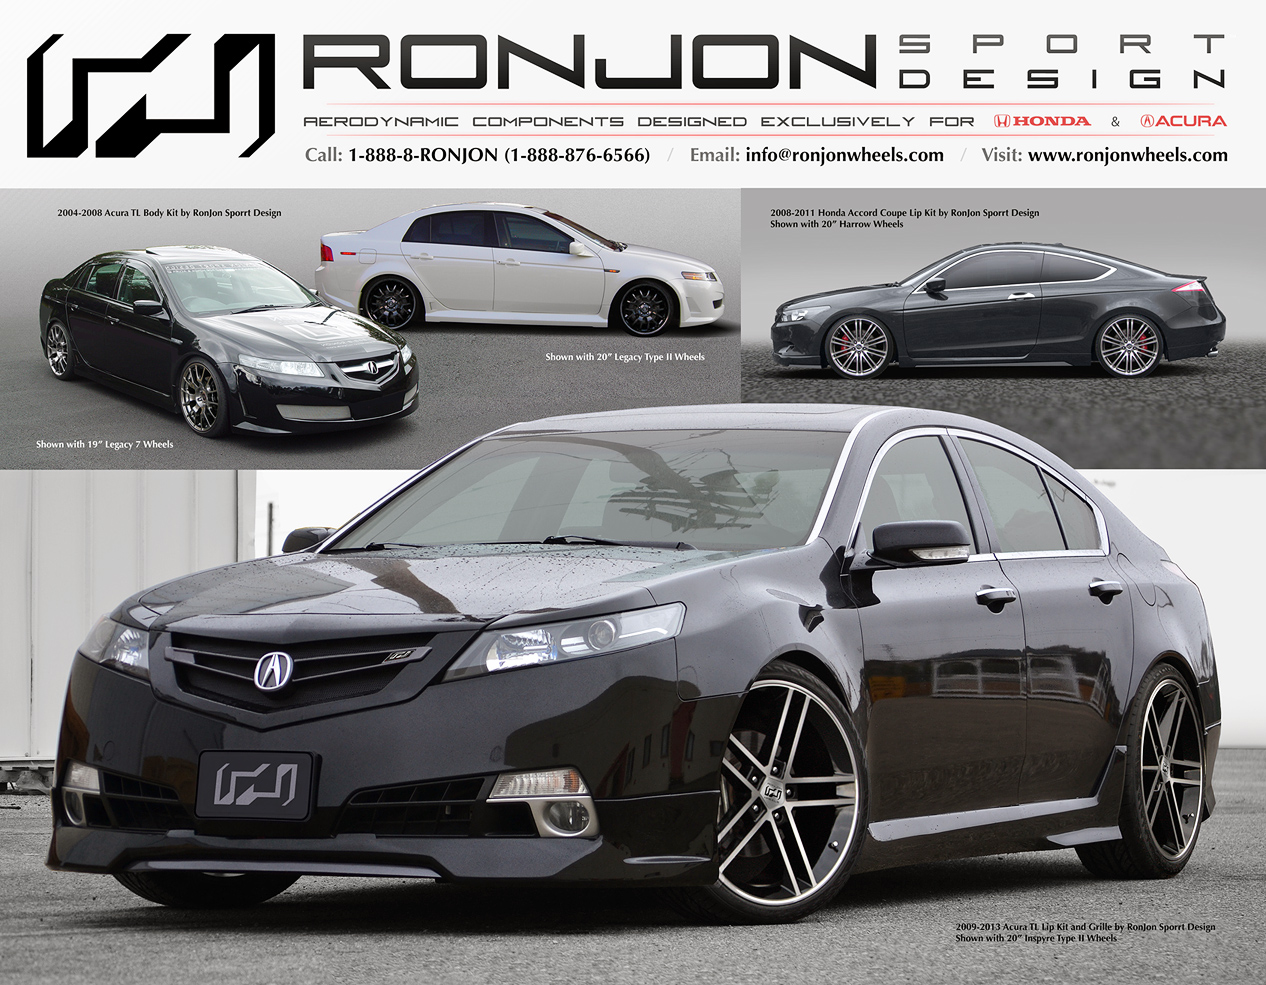 Acura TL Acura Tl Front Lip Acura Car Photos And Wallpapers - 99 acura tl front lip